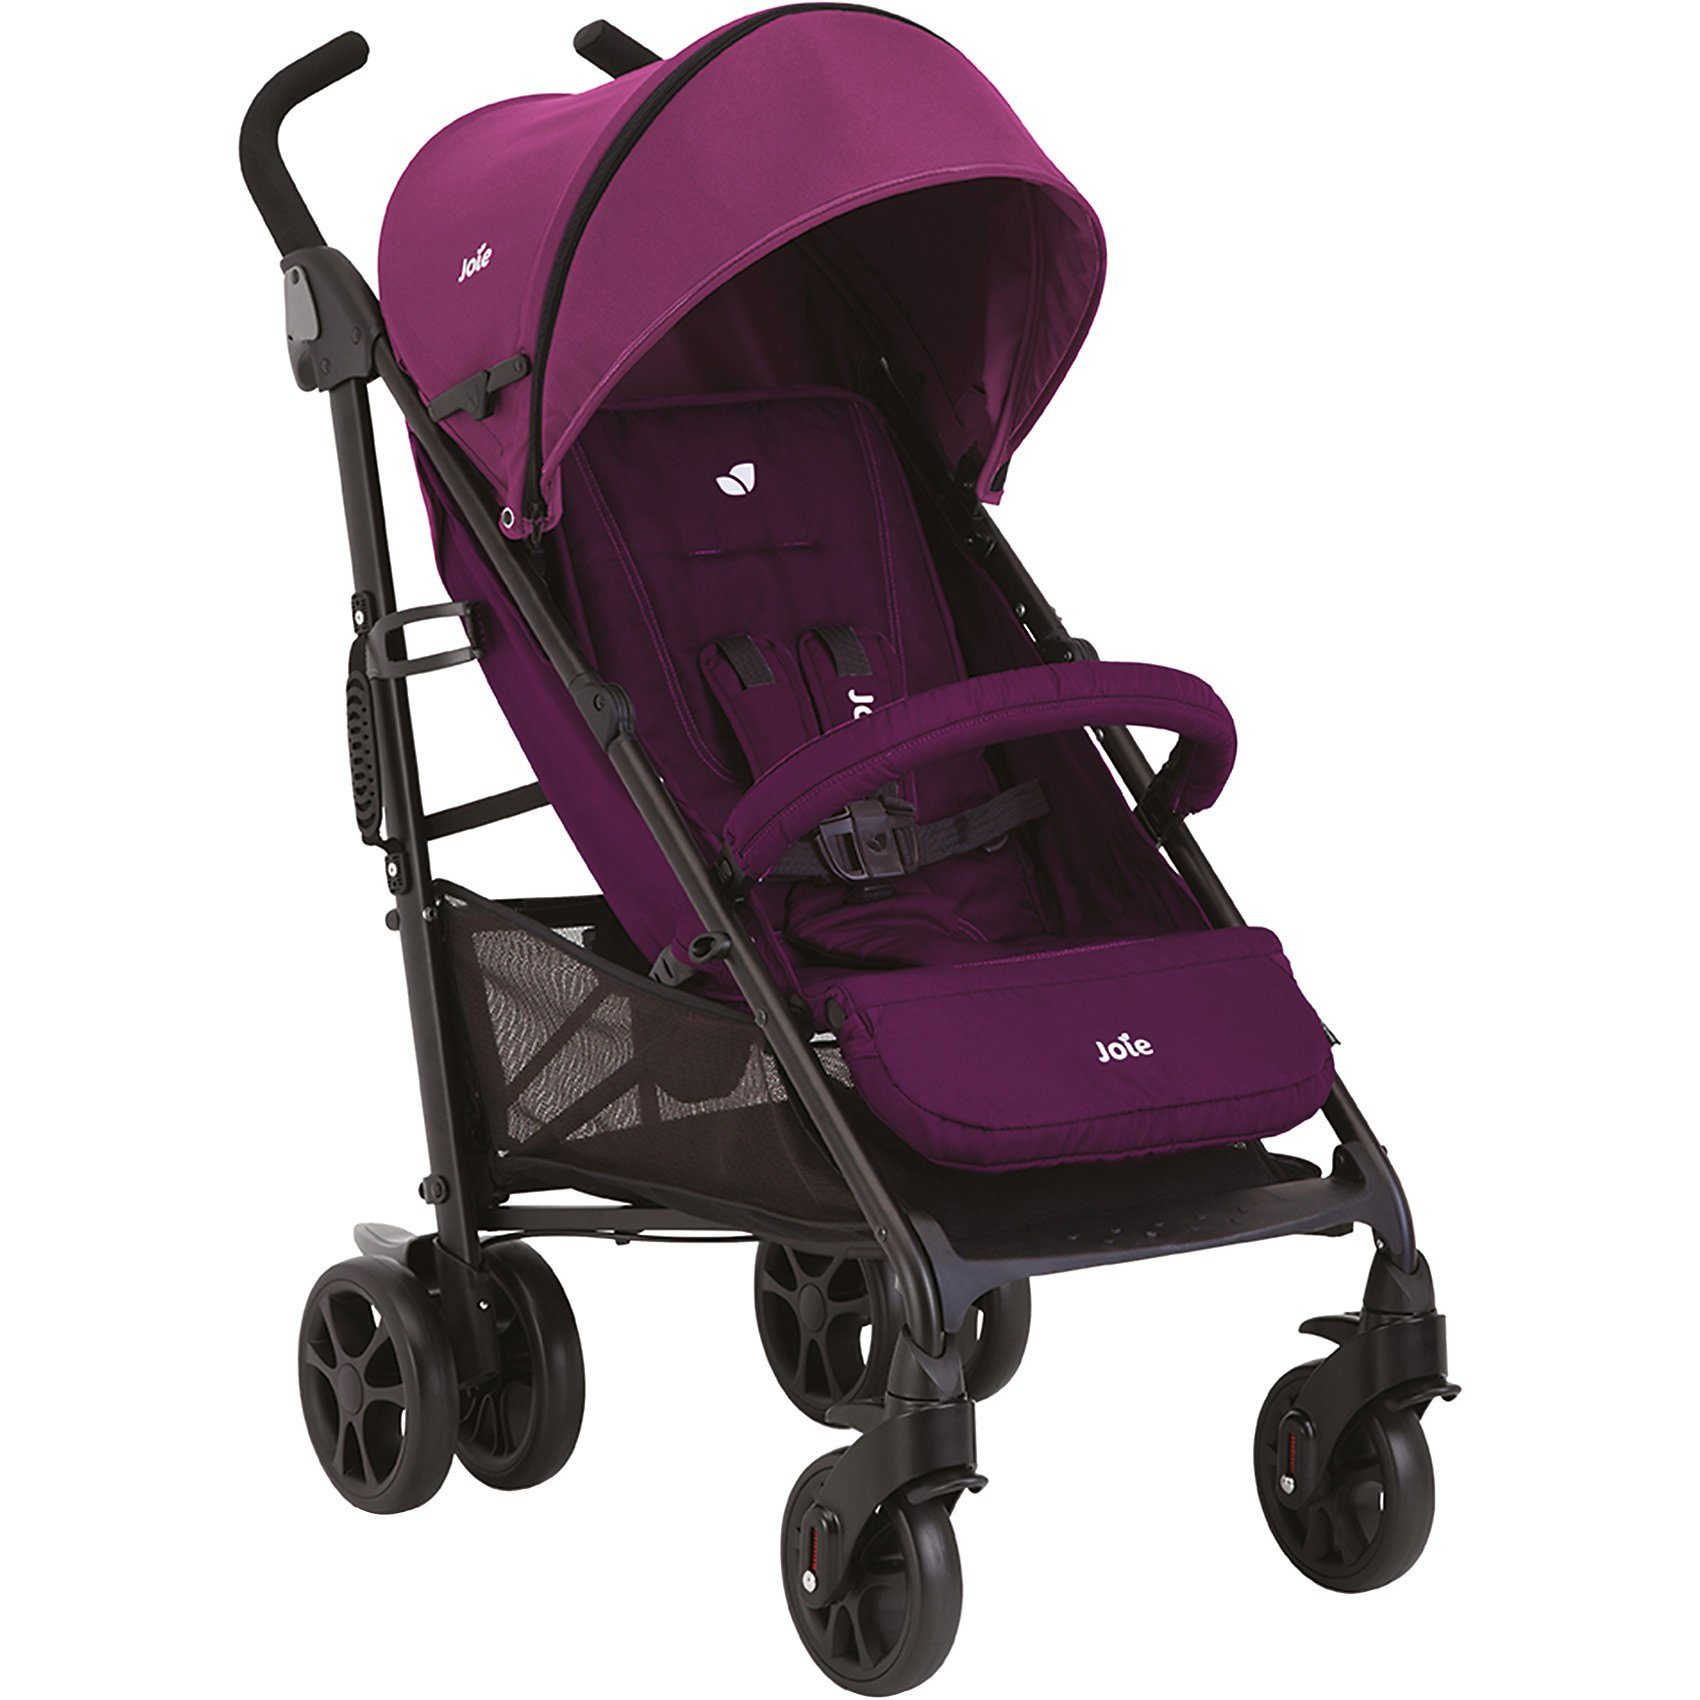 Joie Buggy Brisk LX, Lilac